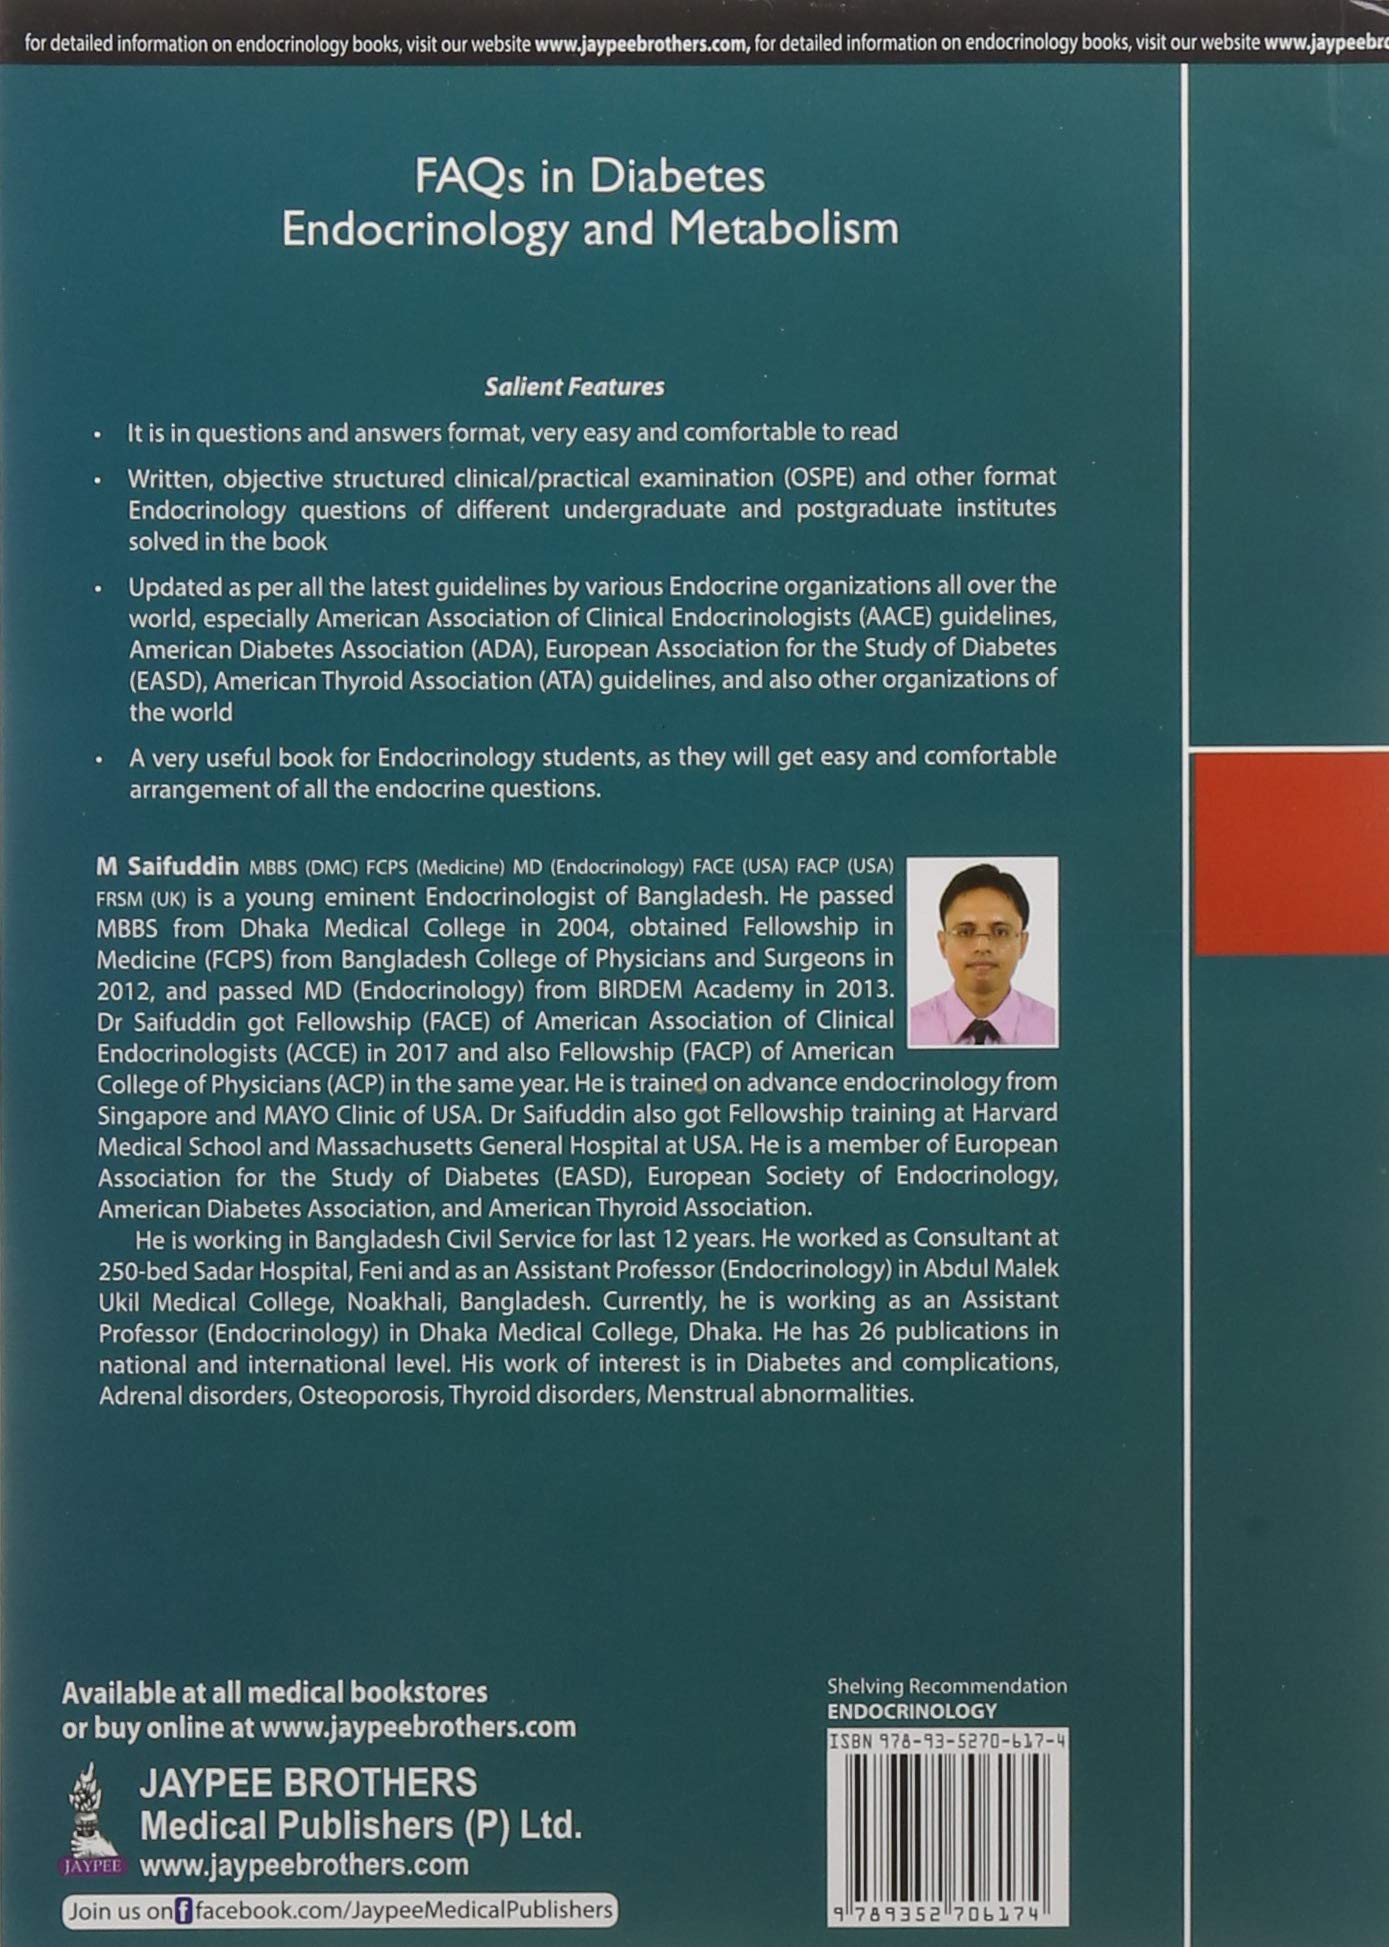 Buy Faqs In Diabetes Endocrinology And Metabolism Book